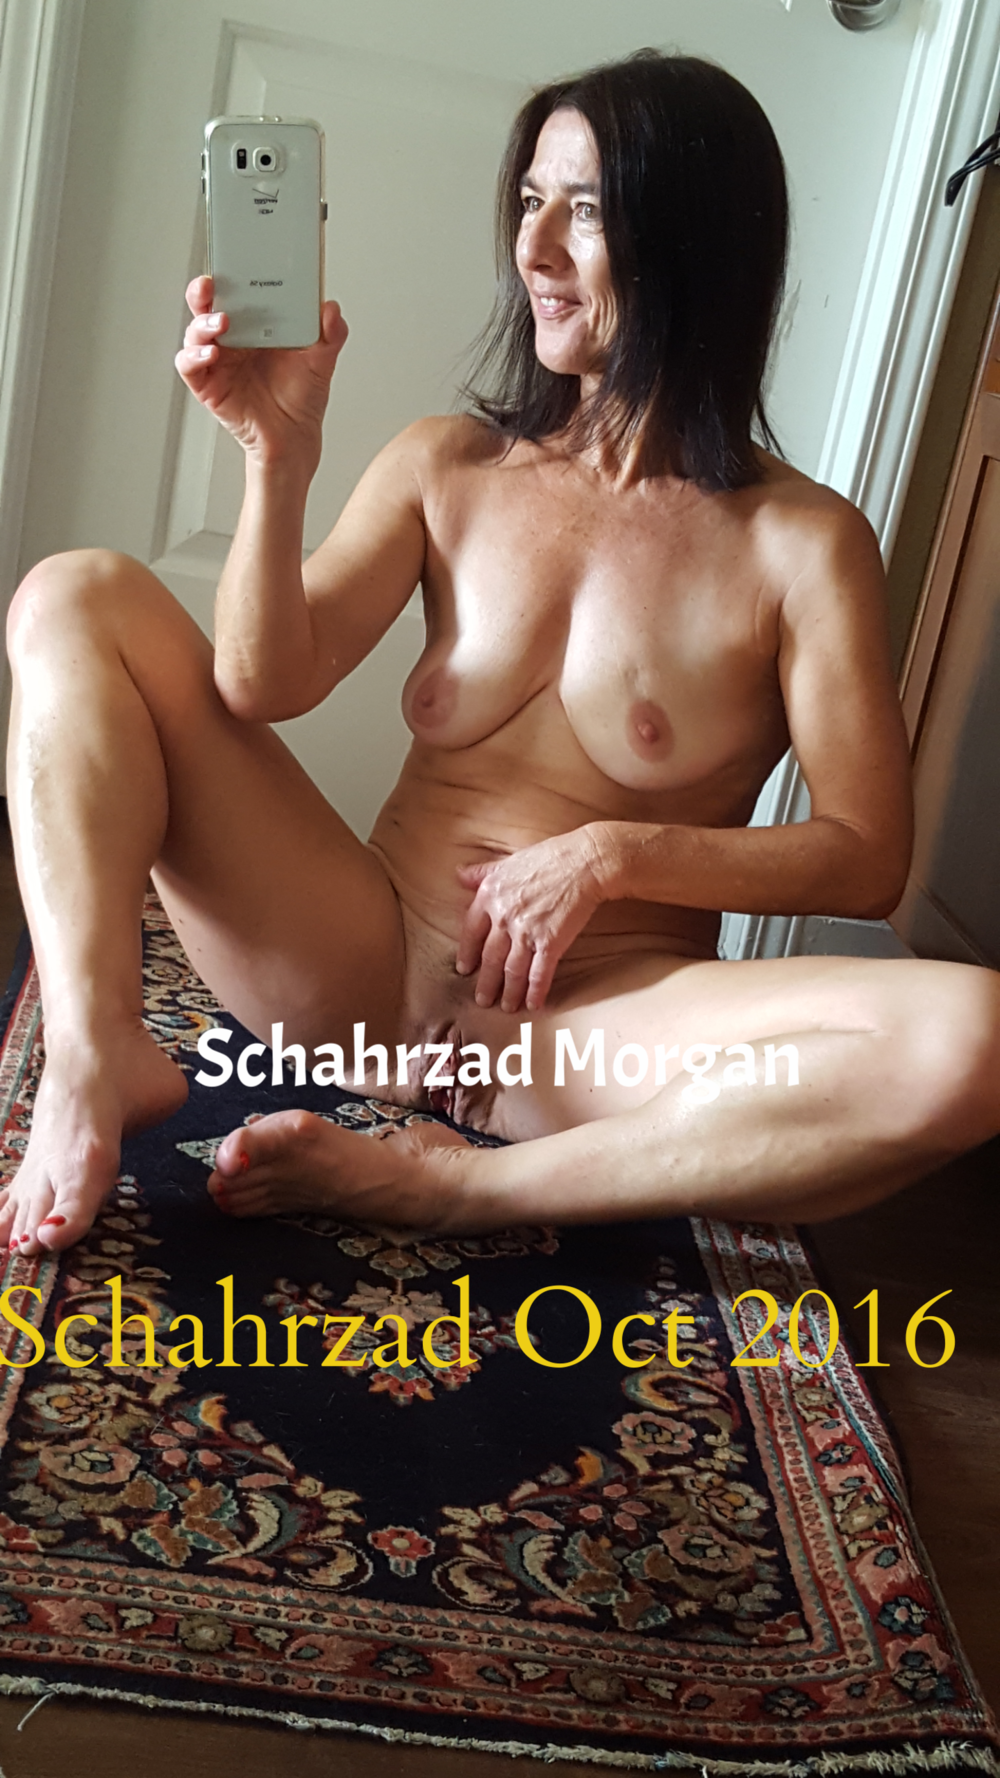 spreading my lips nude oct 2016.png